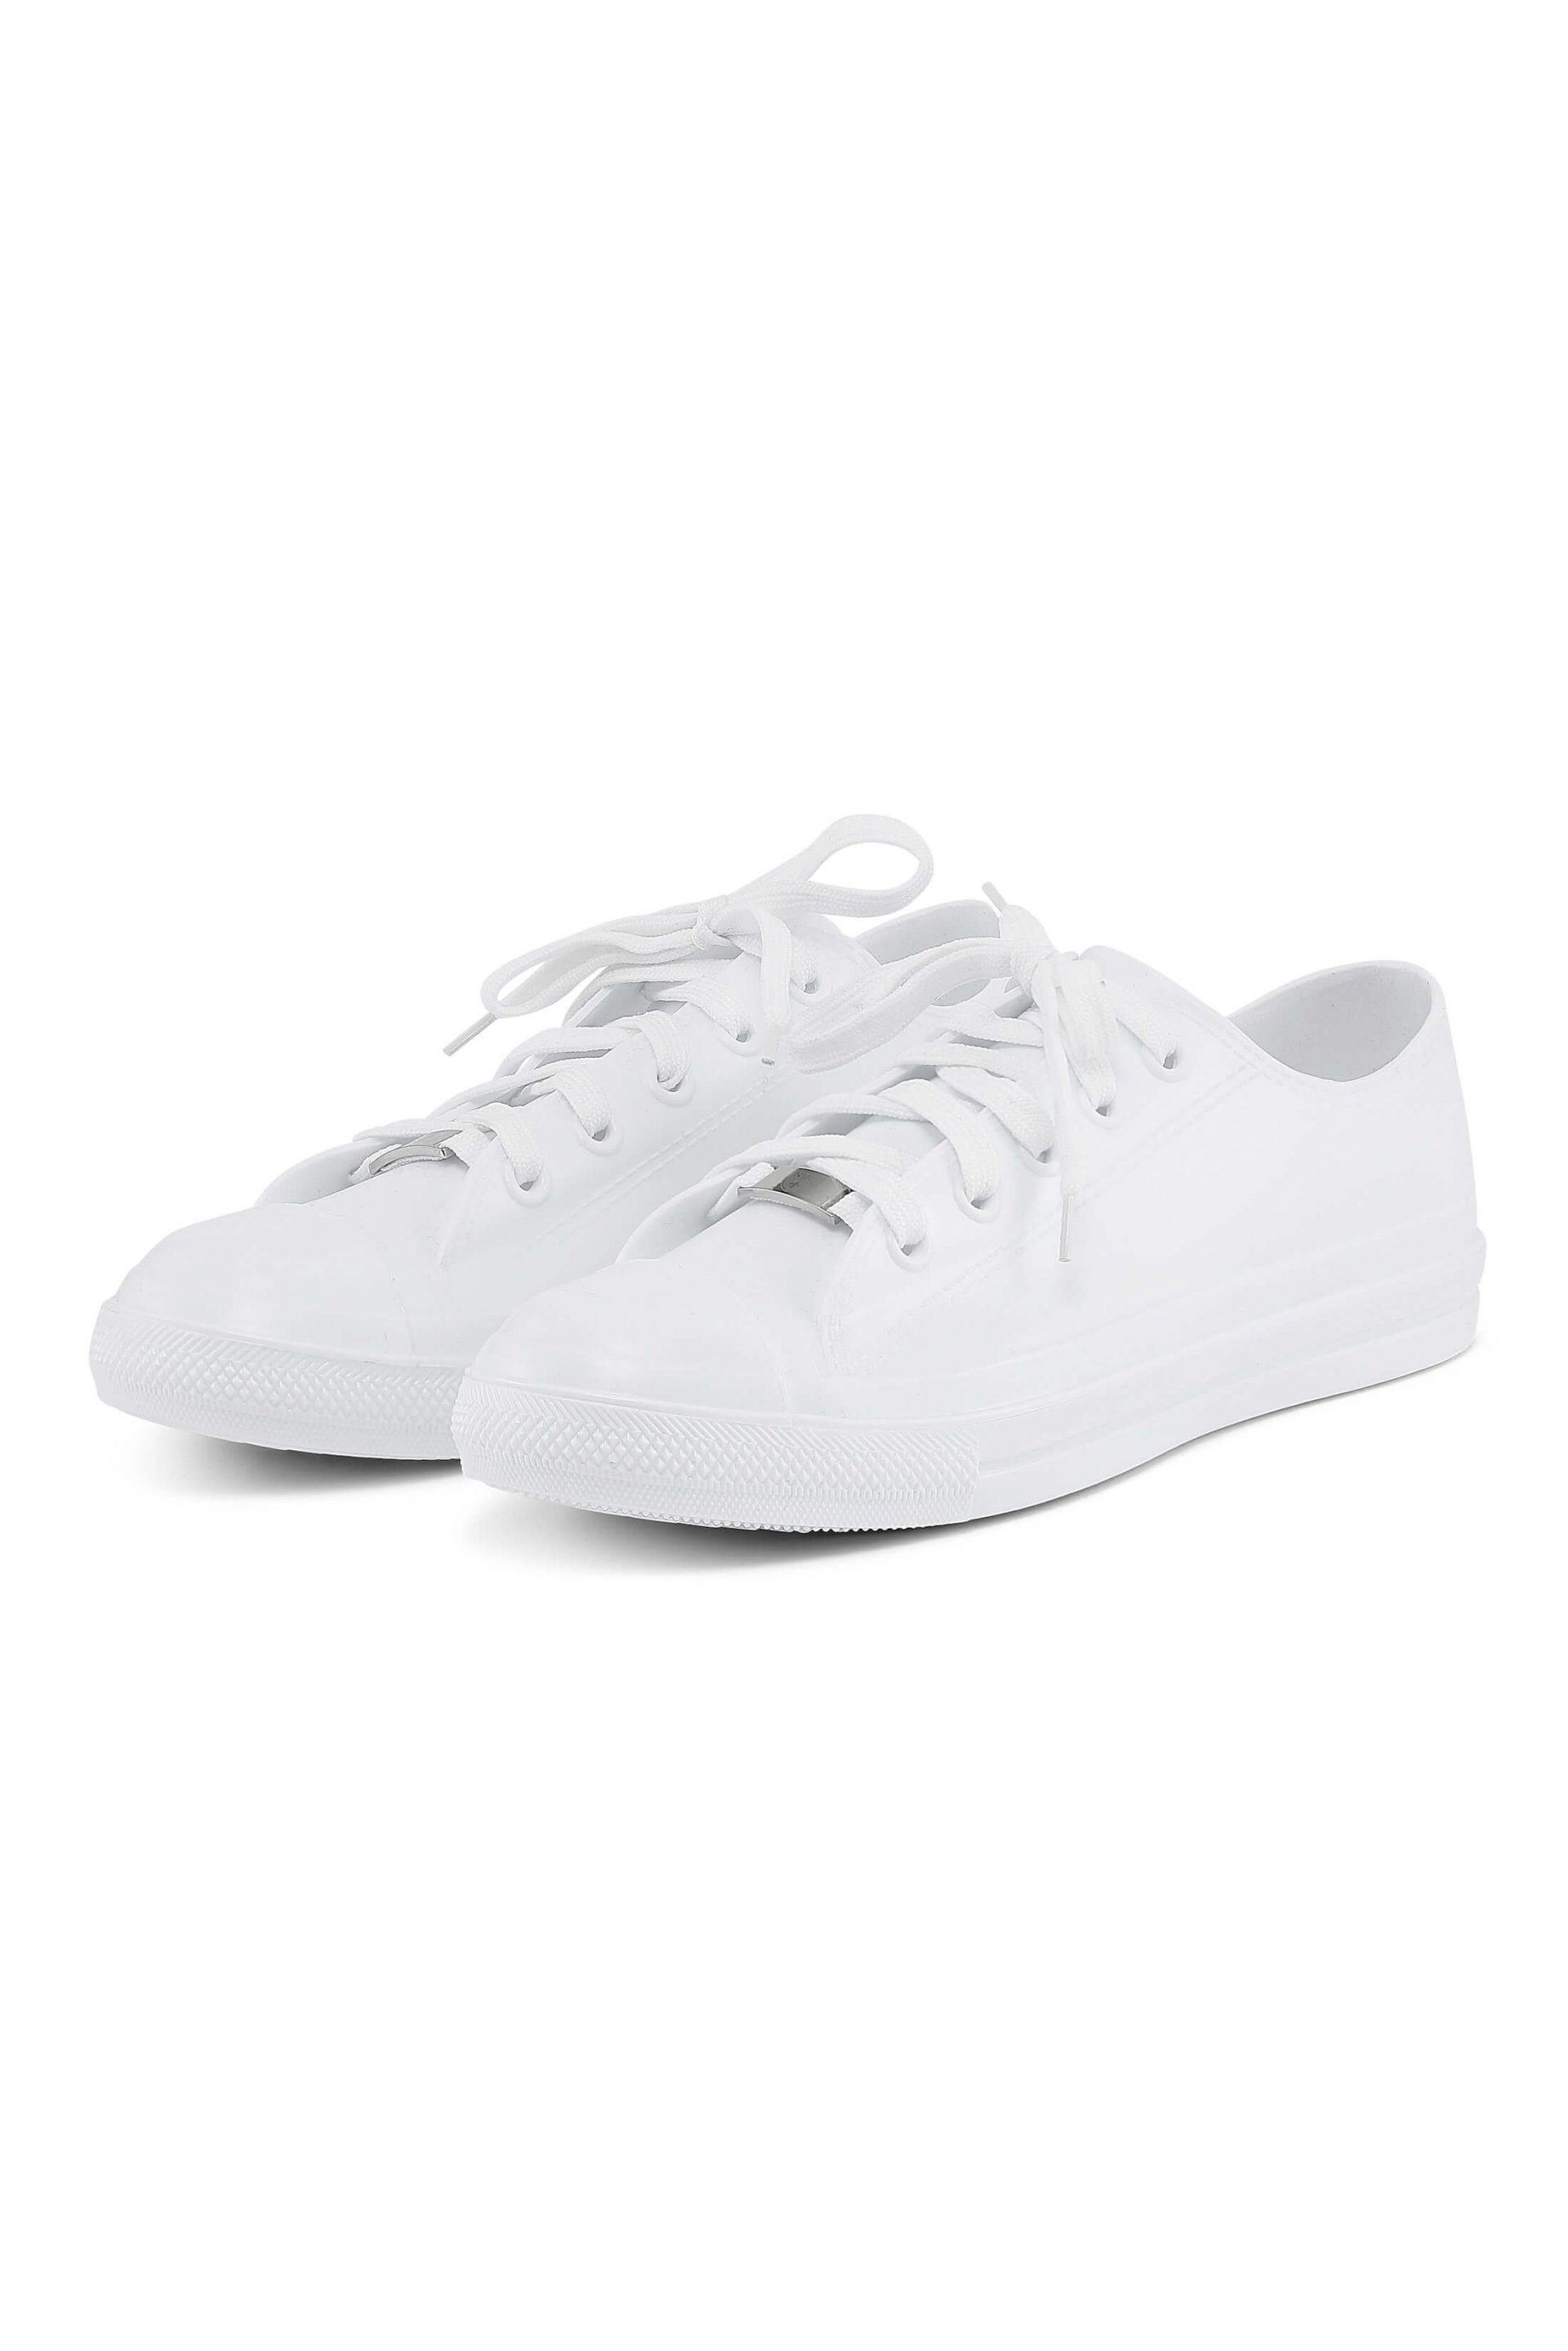 White water-resistant sneakers